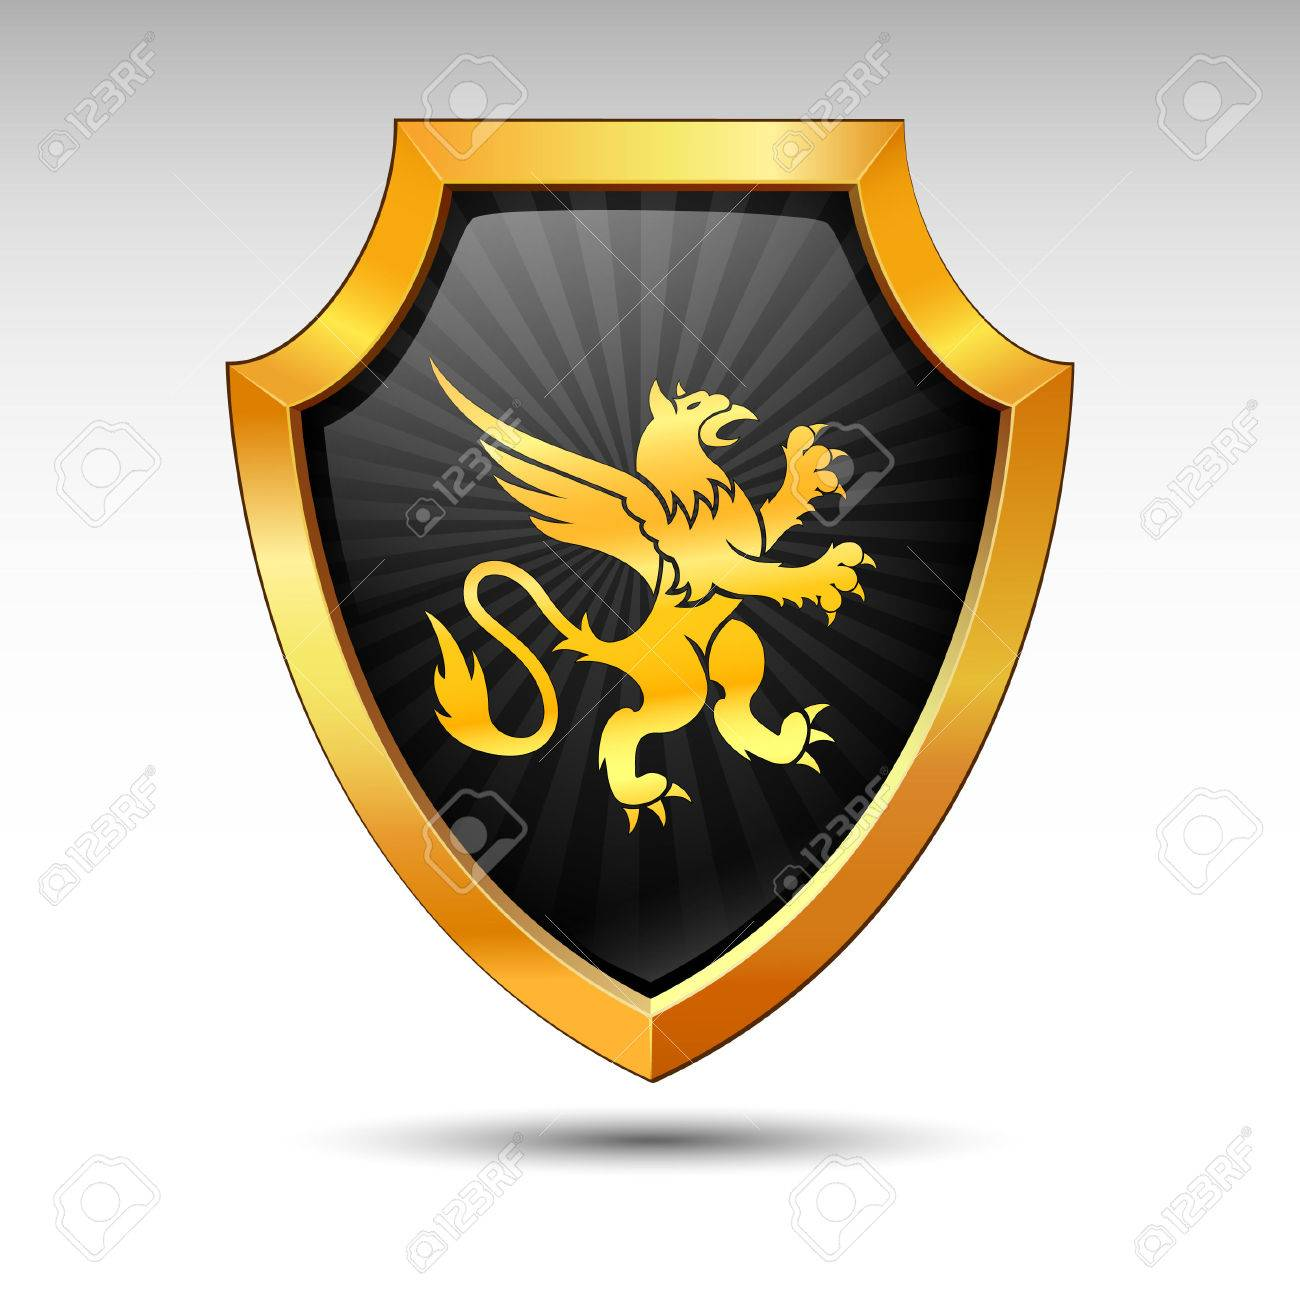 Shield on a white background. Stock Vector - 8146048